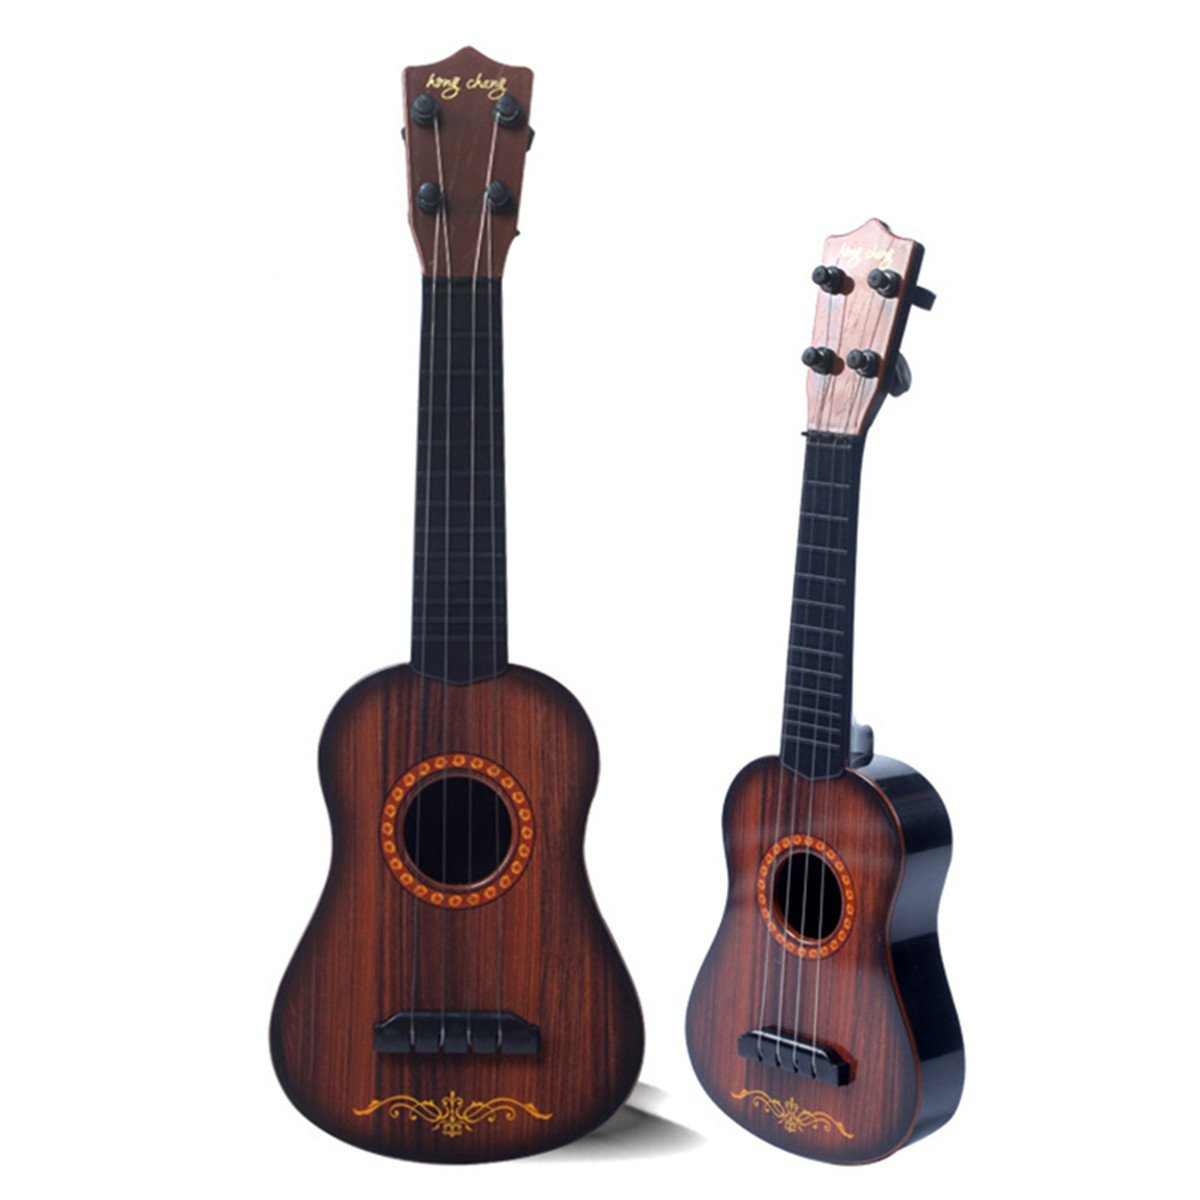 Aissimio 4 Strings Musical Plastic Toy Educational Toy Fun Learn Musical Instrument Toys Ukulele Small Guitar For Beginners Kids Child 42*13.5*5cm pears